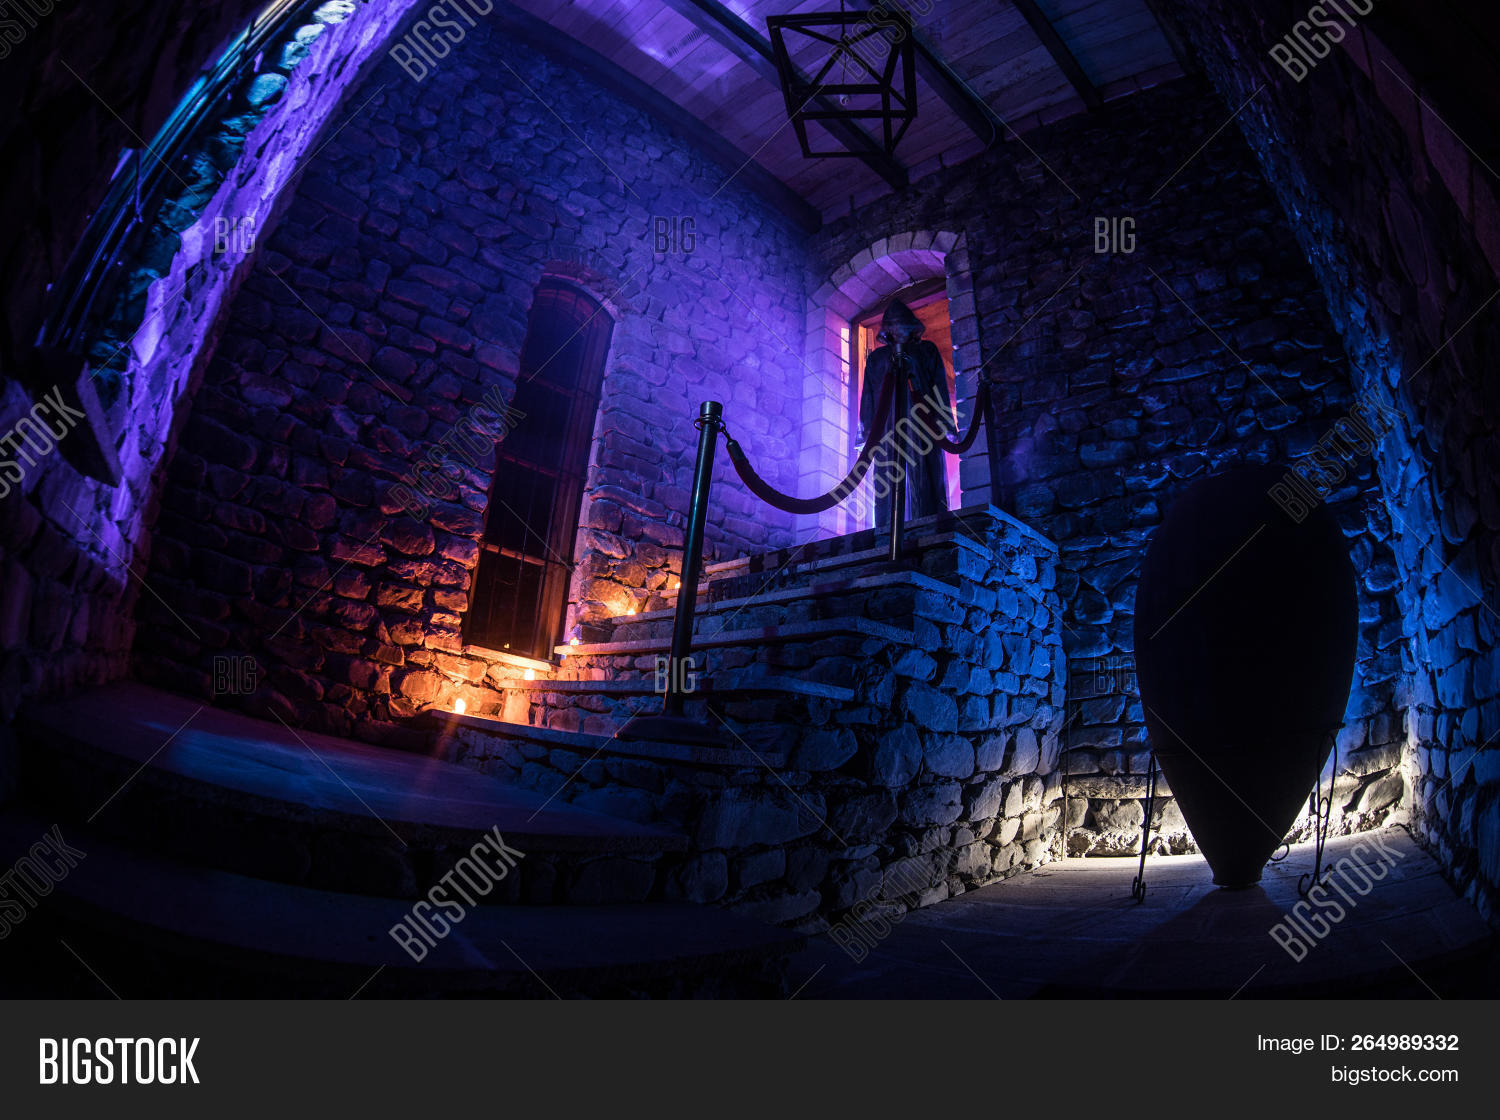 Inside Old Creepy Image Photo Free Trial Bigstock